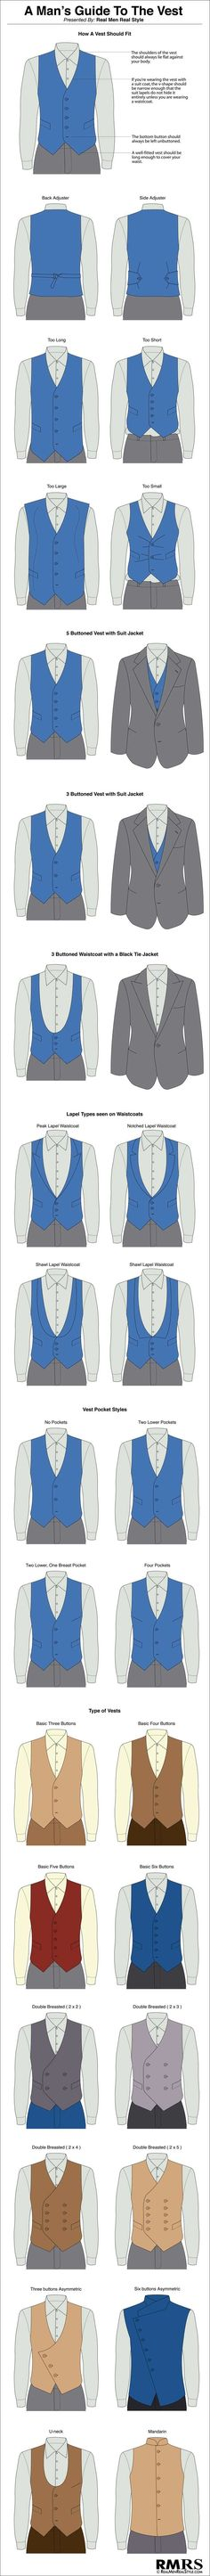 Gentlemen: #Gentlemen's #fashion ~ A Man's Guide To The Vest (Infographic).